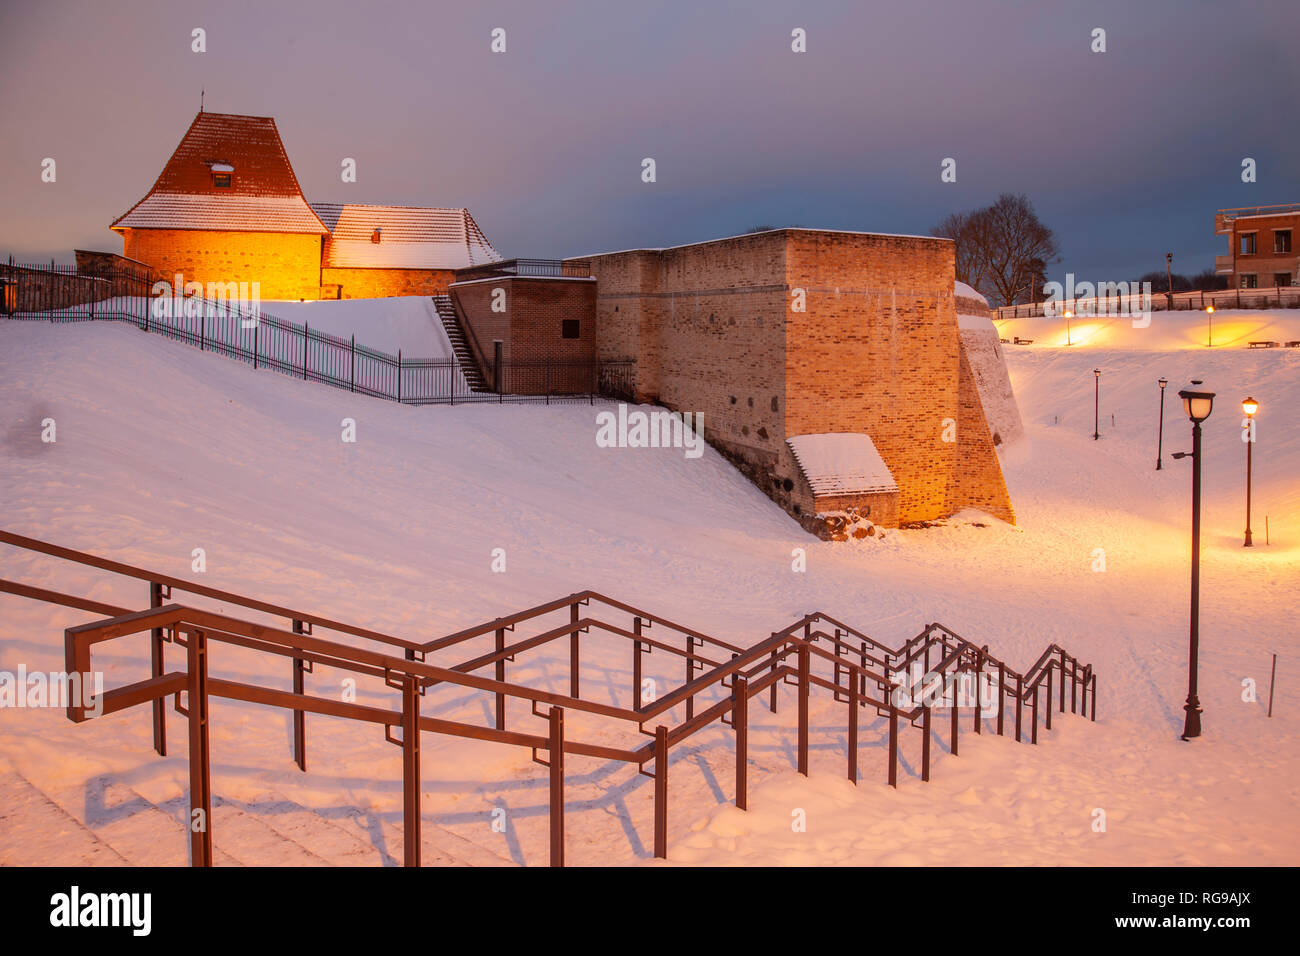 Evening at the Bastion of the city walls in Vilnius, Lithuania. - Stock Image